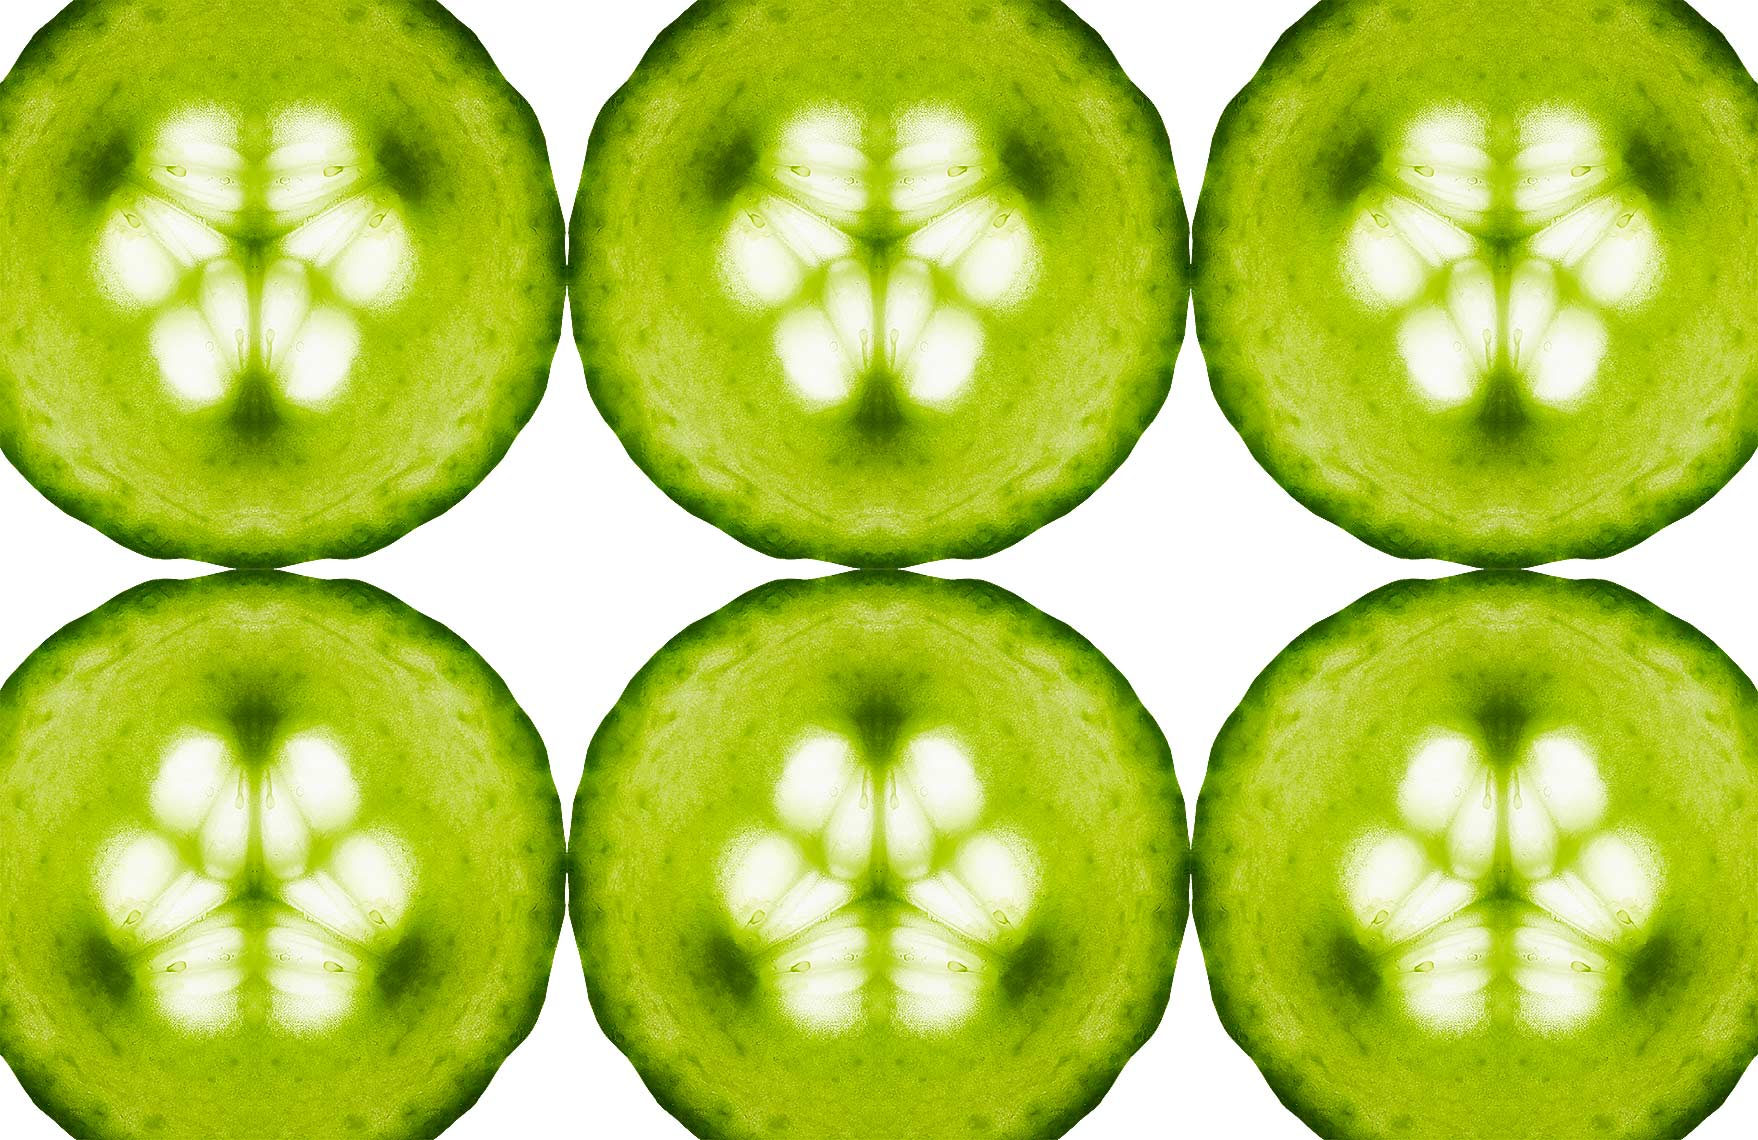 CUCUMBER_SLICES